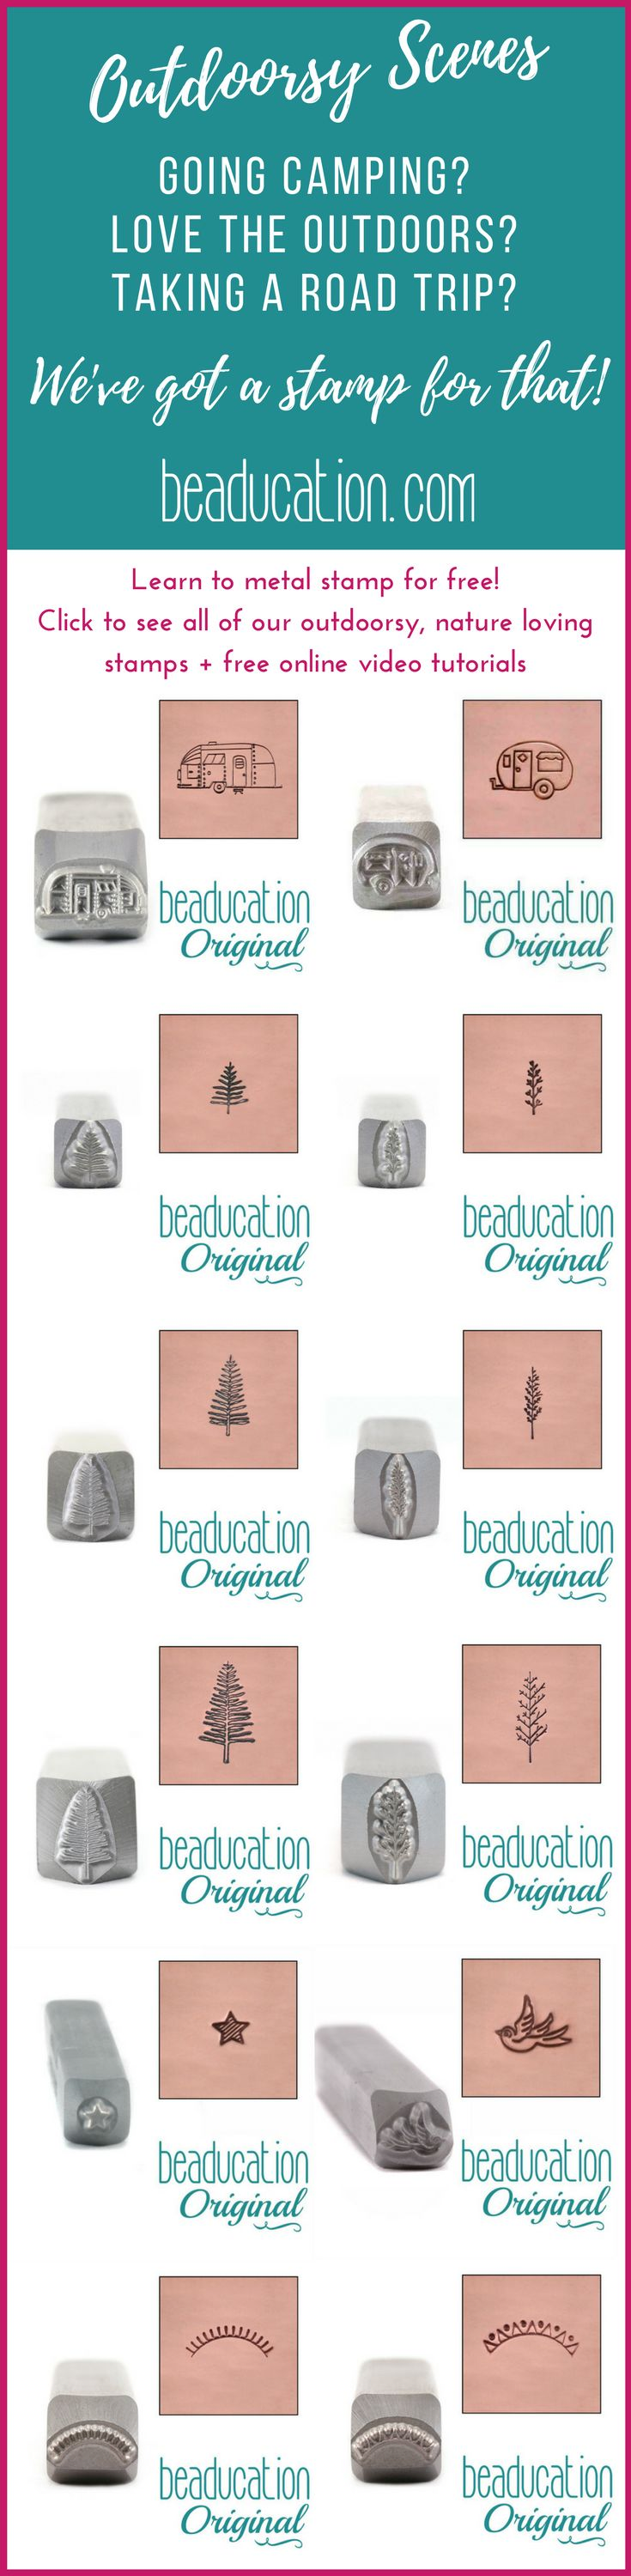 If you love the outdoors, are a nature lover or are taking a camping or road trip, our metal design stamps / punches are perfect for making your own custom diy jewelry to gift, wear or sell. See all of the plus our free classes when you click the link!